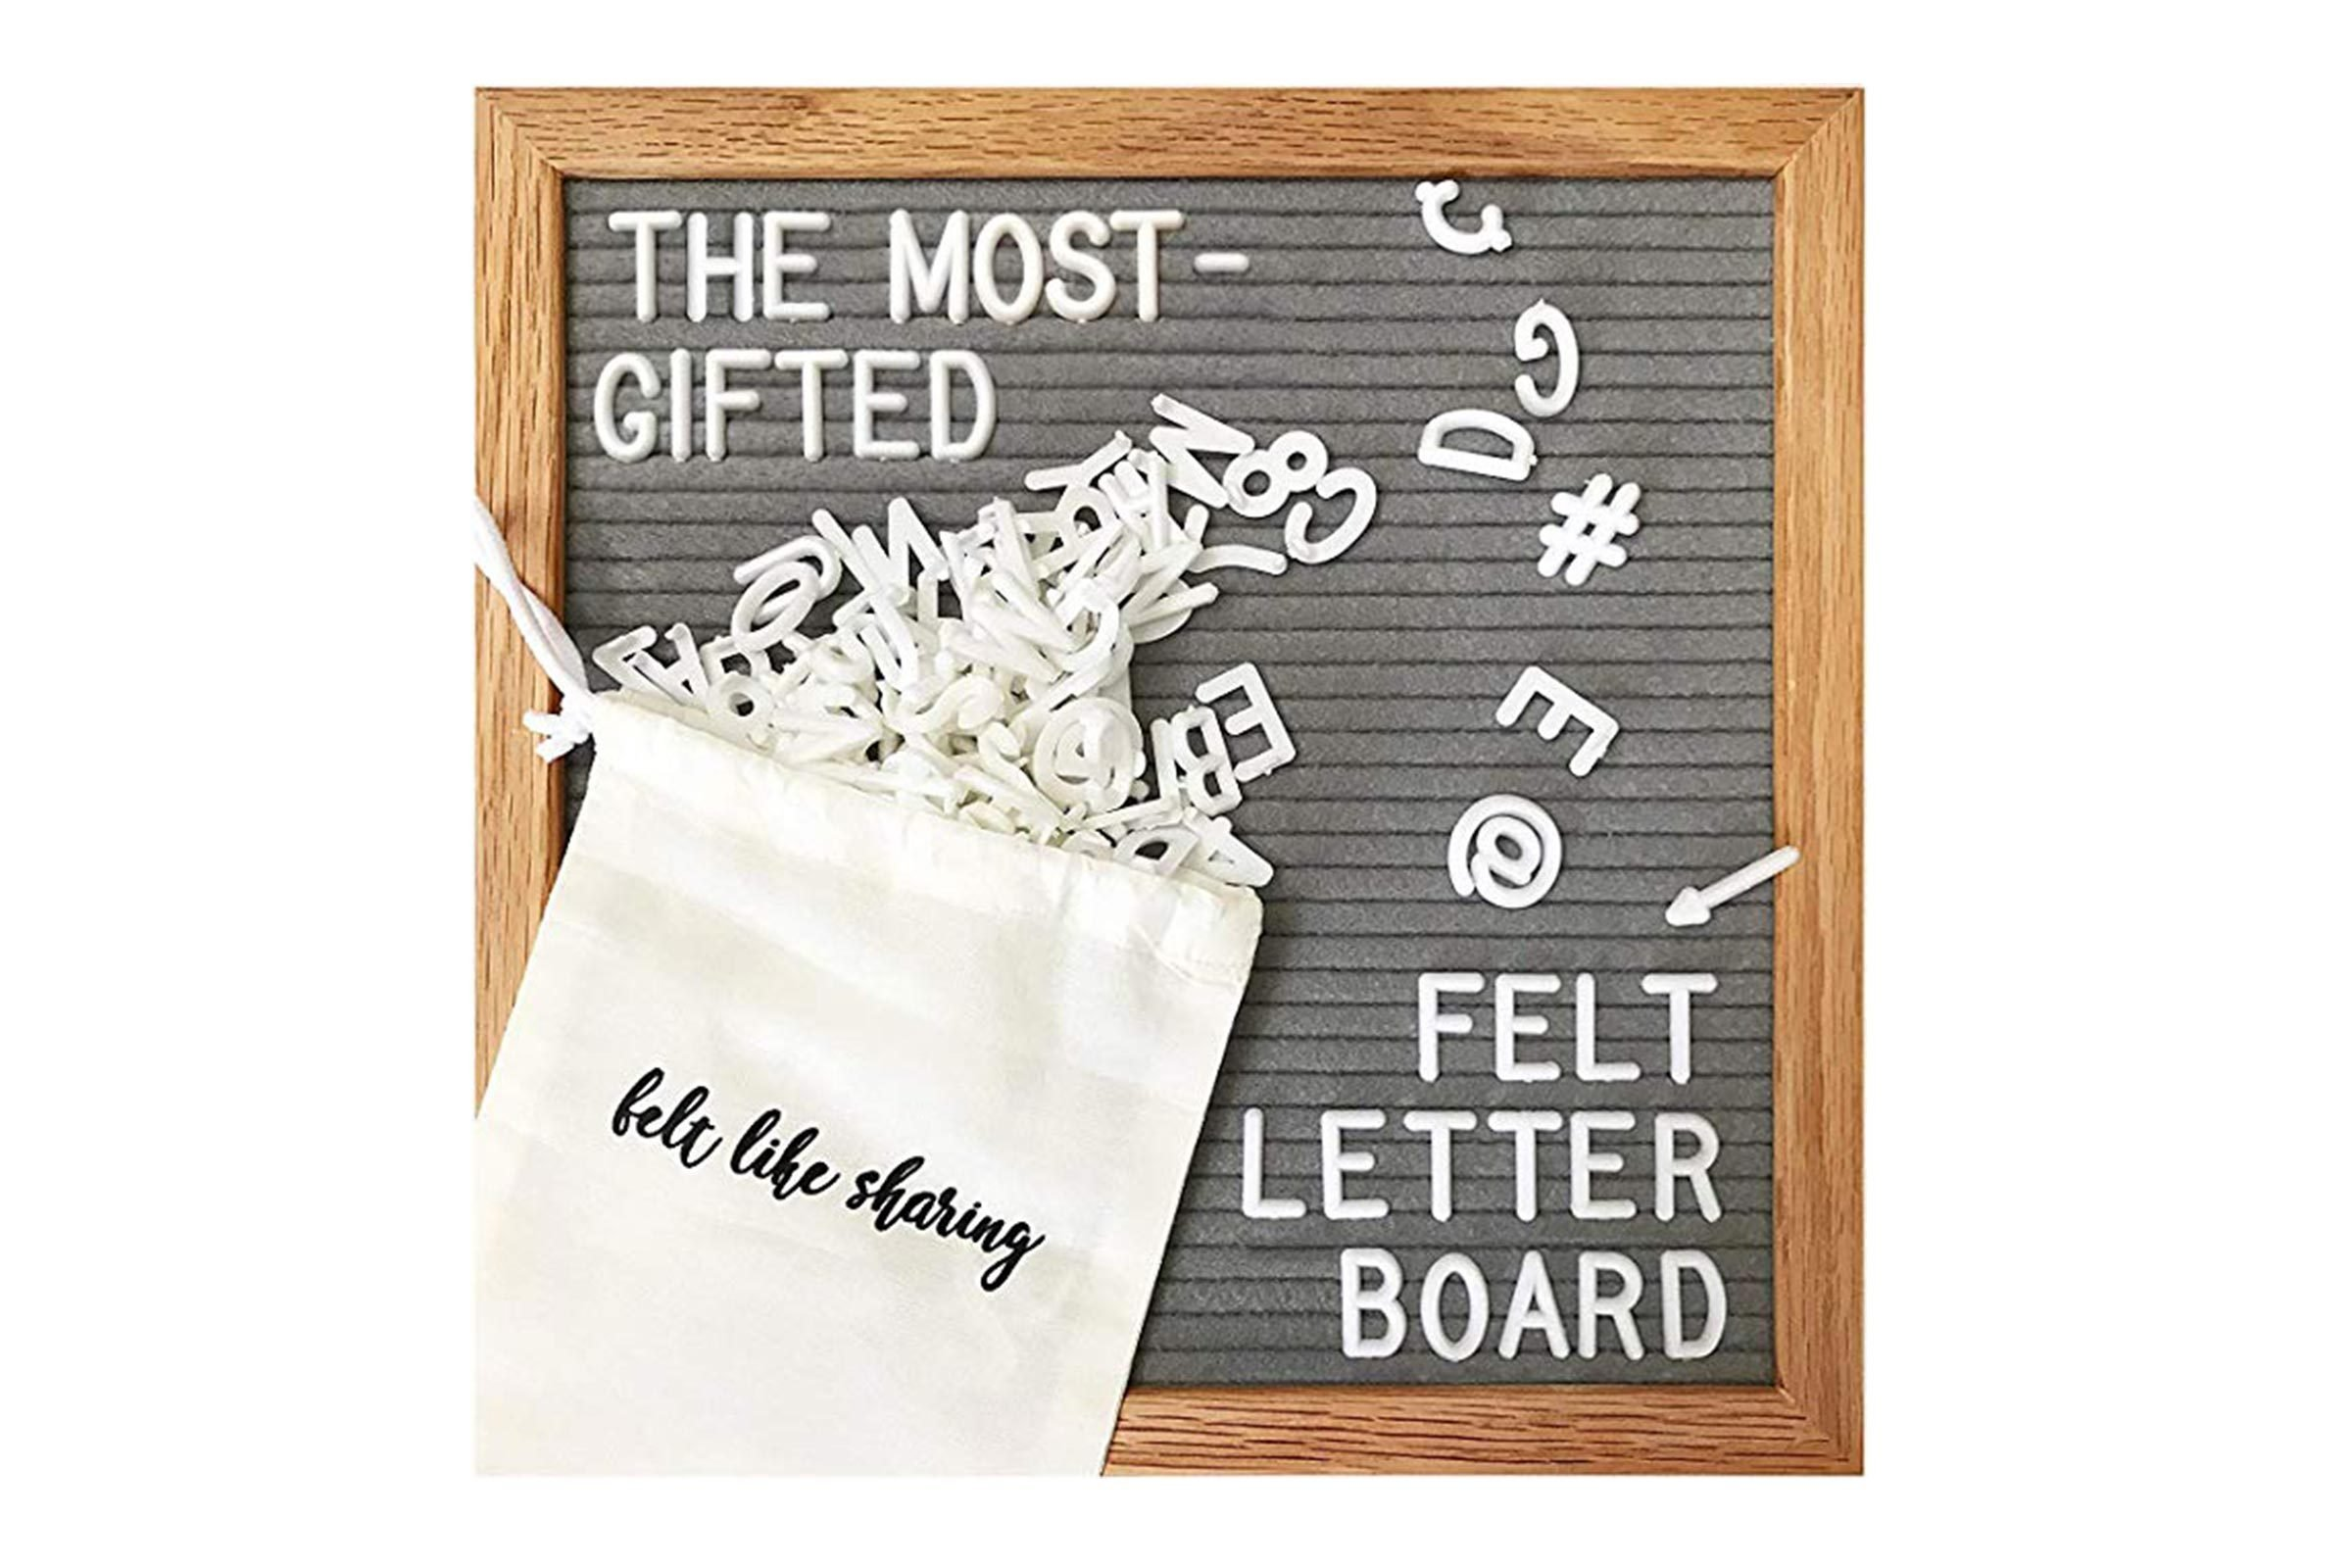 6_A-letterboard-for-social-media-messages